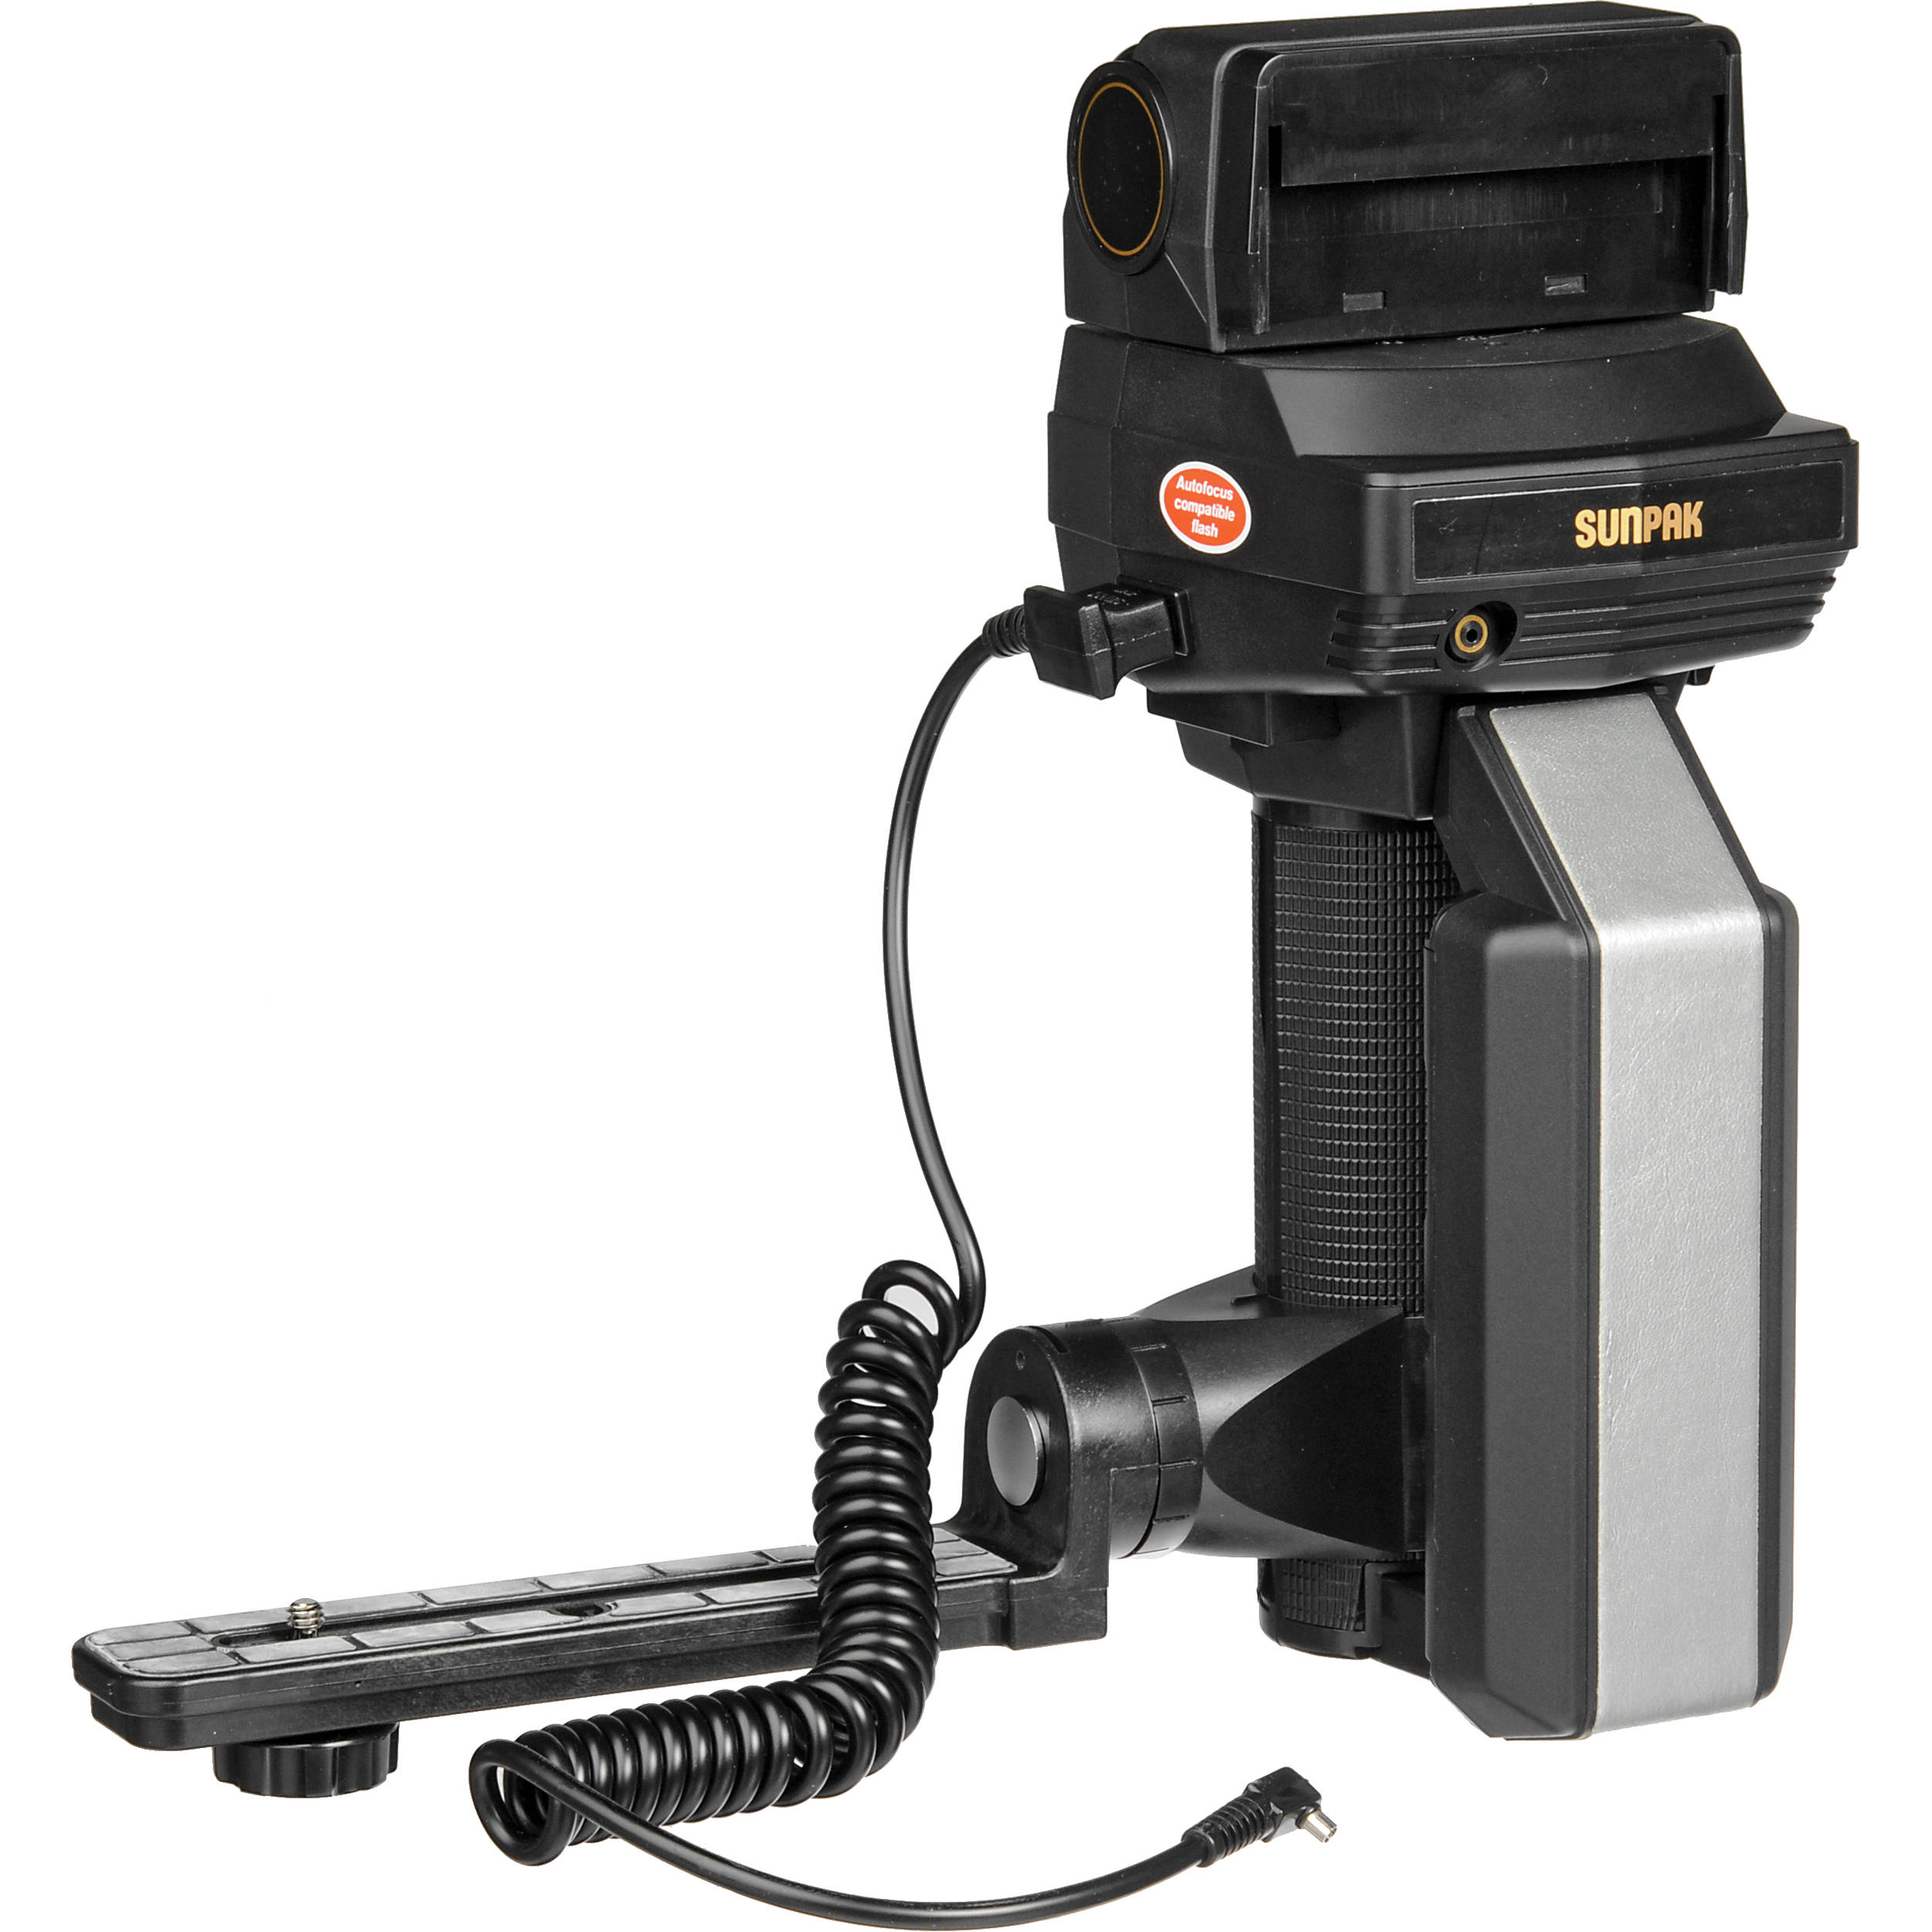 Sunpak 622 Super Pro Flash Body